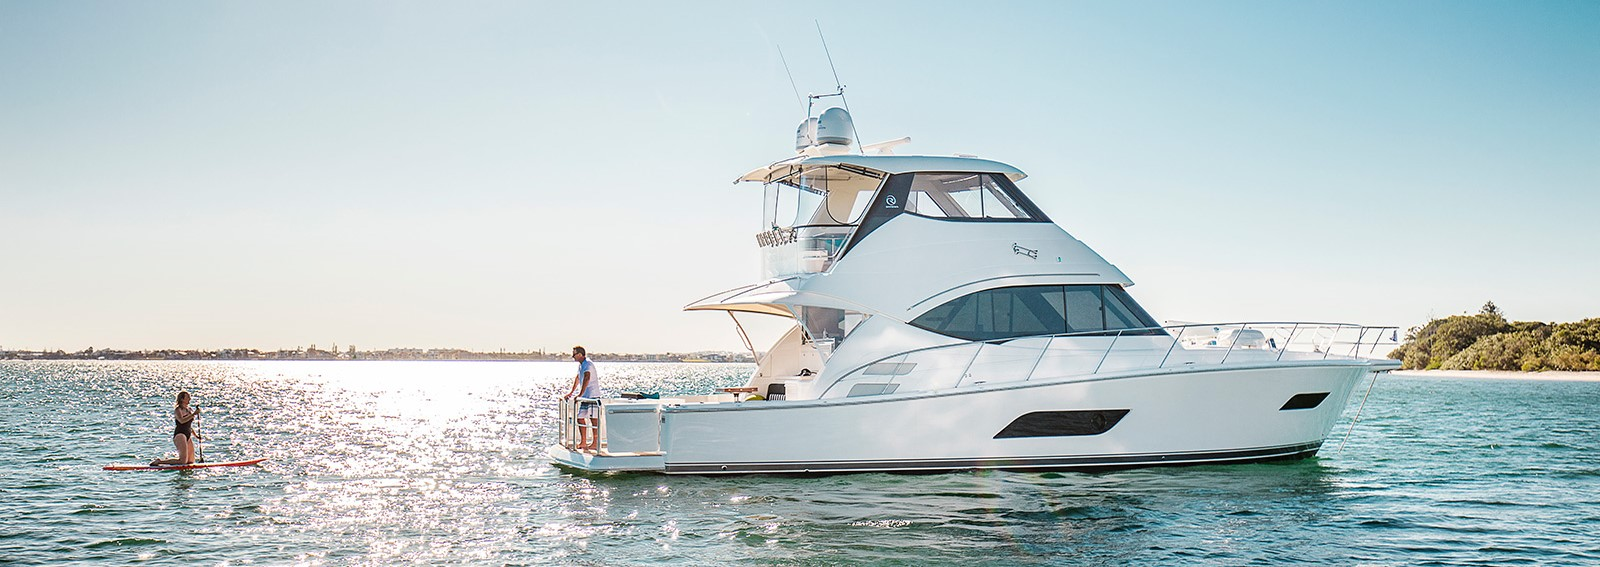 New Riviera Yachts for Sale - View Models